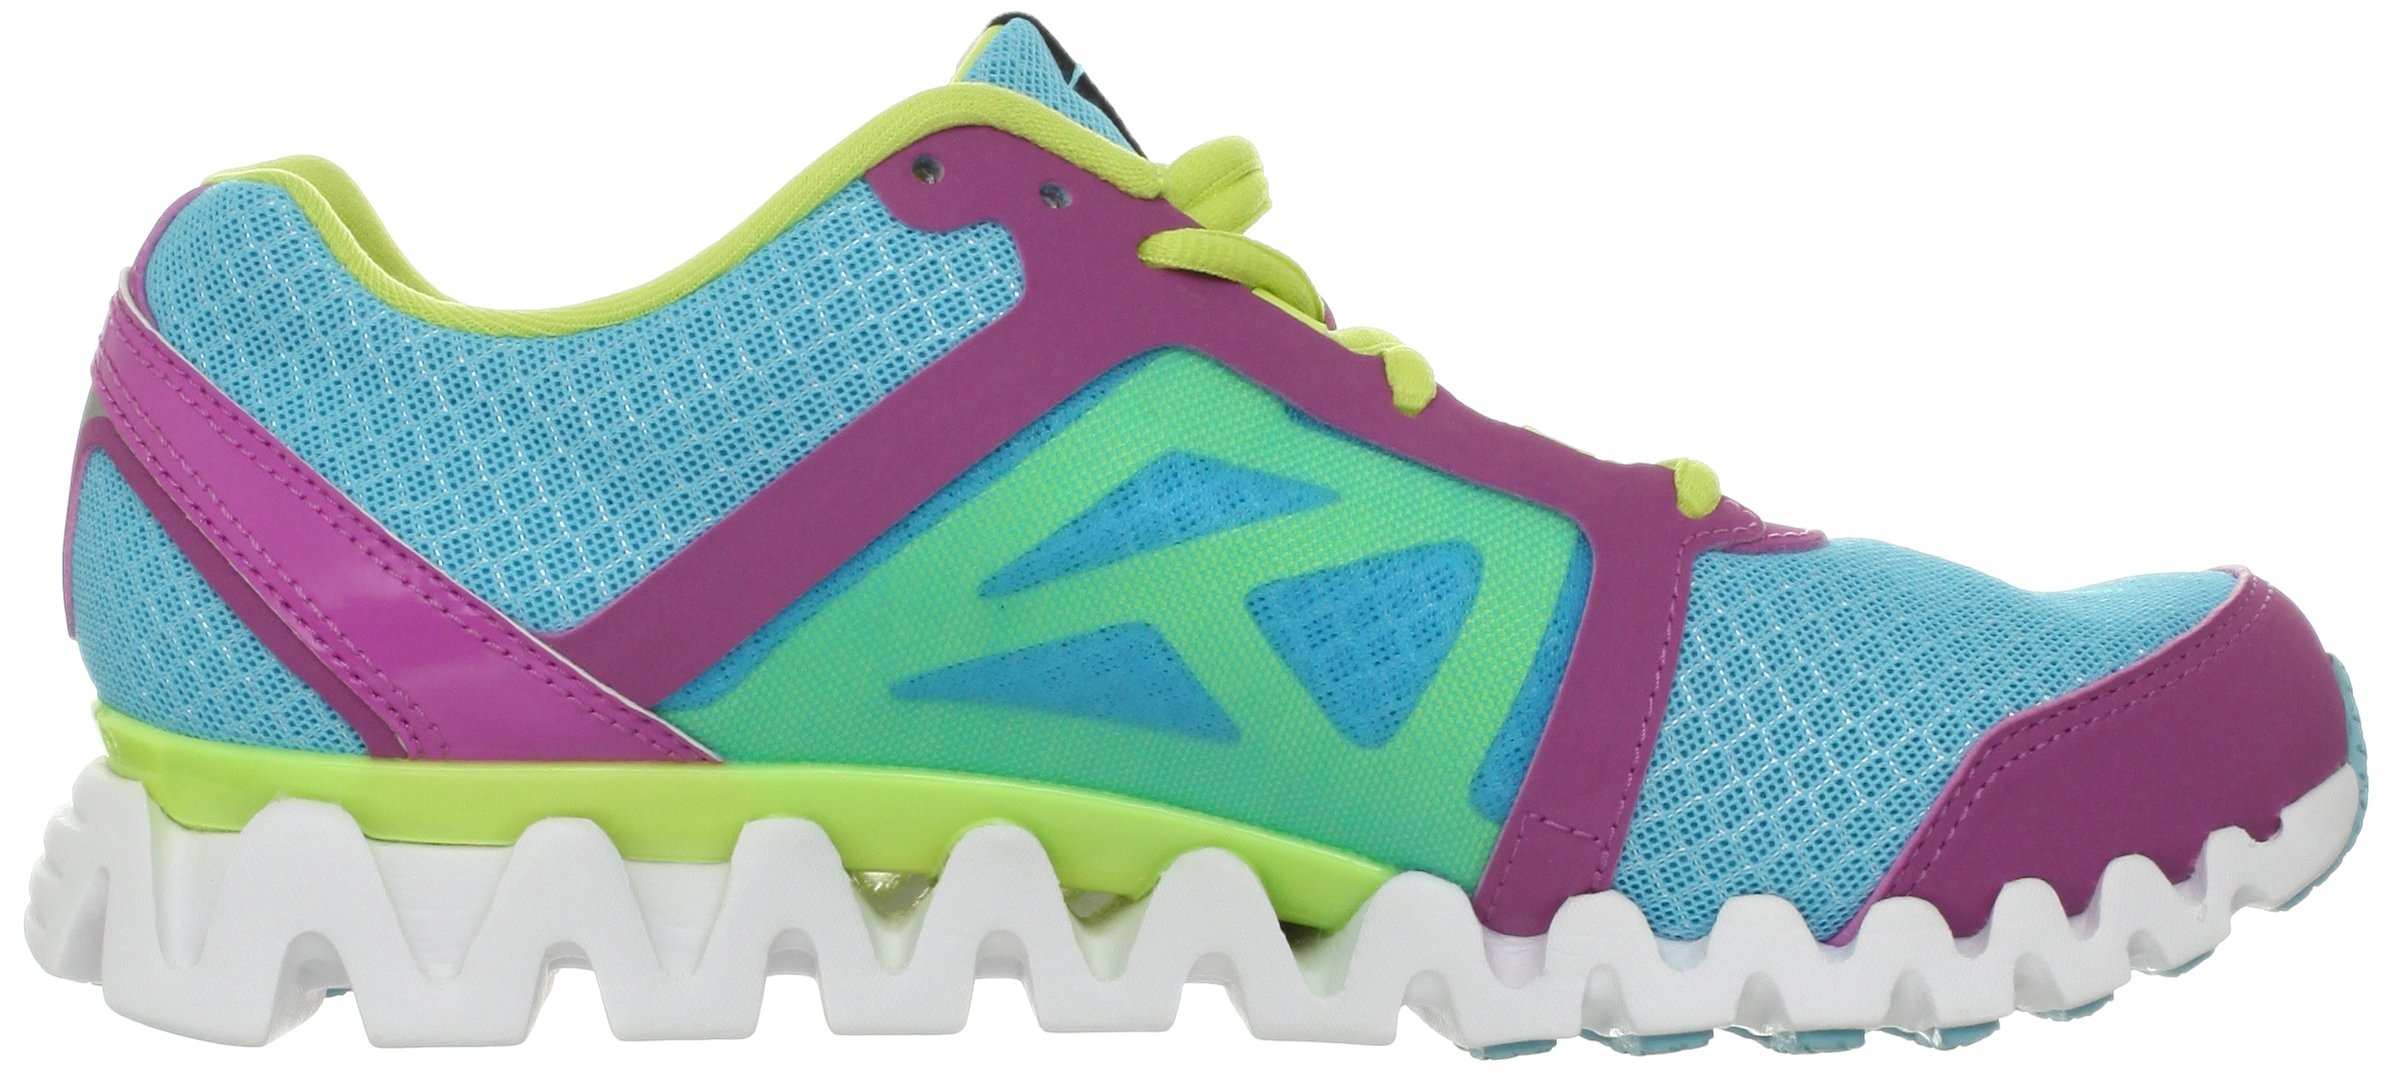 Reebok Women's Zigquick Fire Cross-Training Shoe,Watery Blue/Cool Aloe/Iced Berry/White,10 M US by Reebok (Image #6)